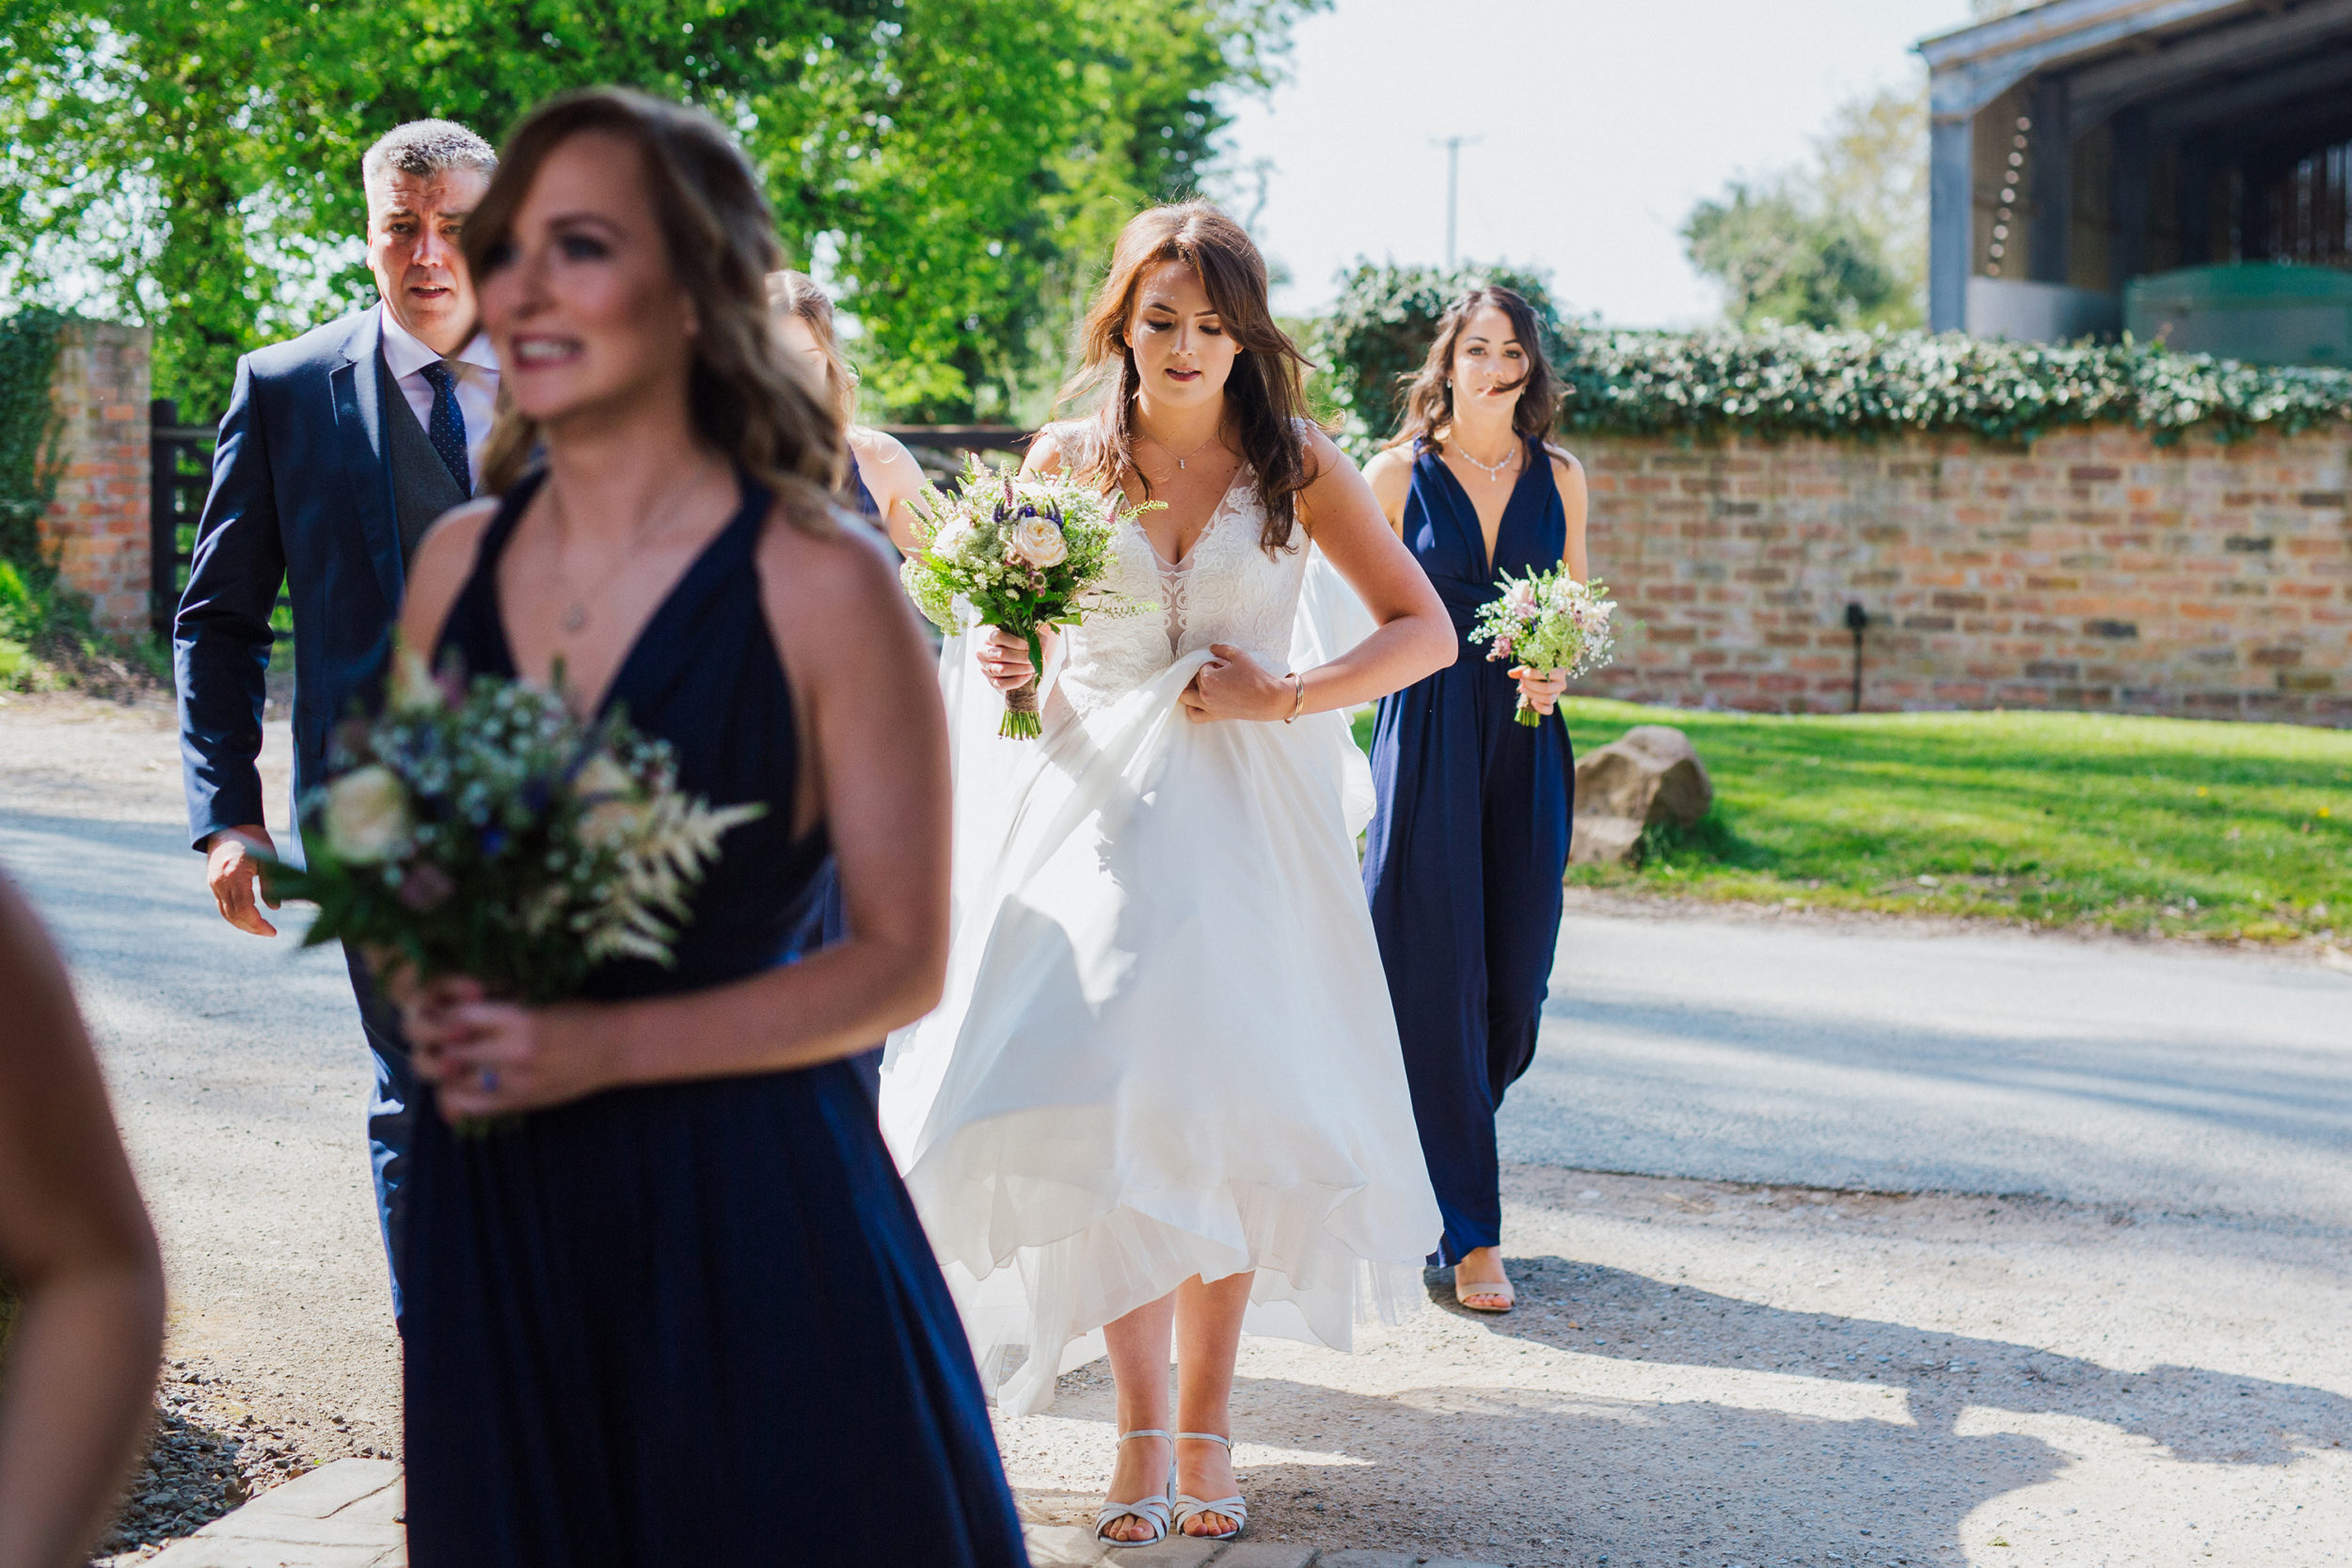 Bridesmaids heading to wedding ceremony at The Normans in York